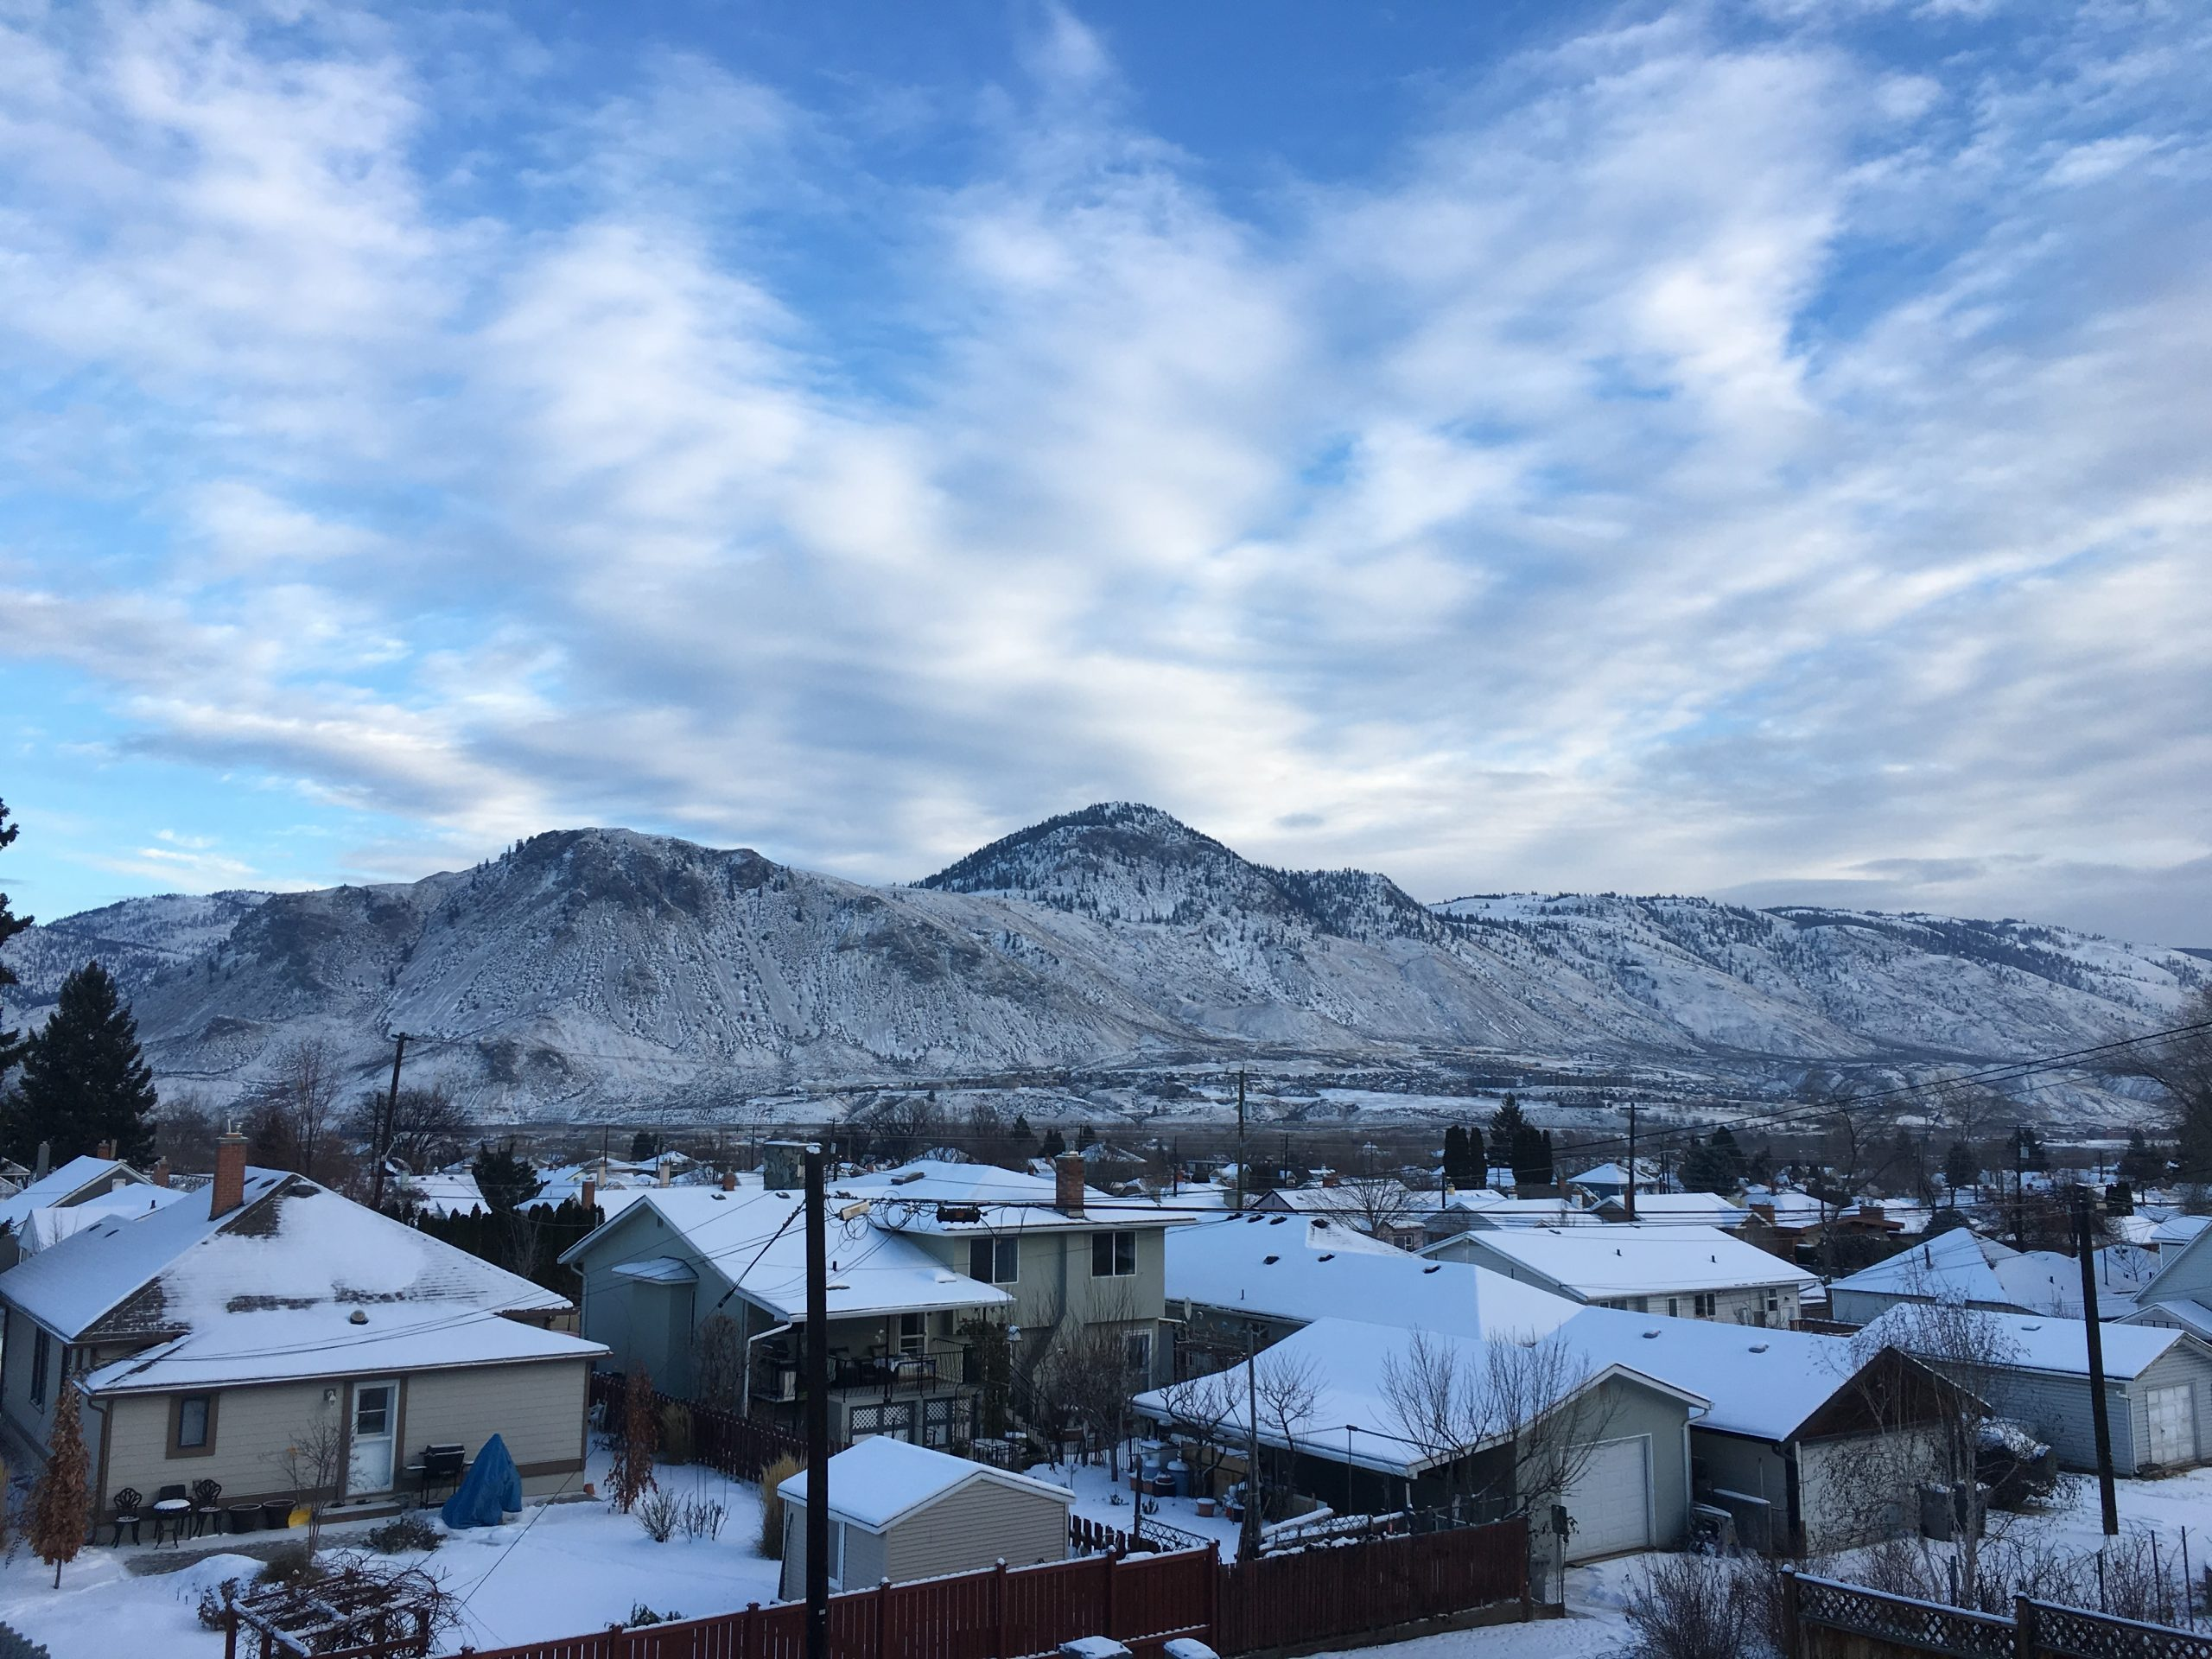 Weekend snowfall shatters record